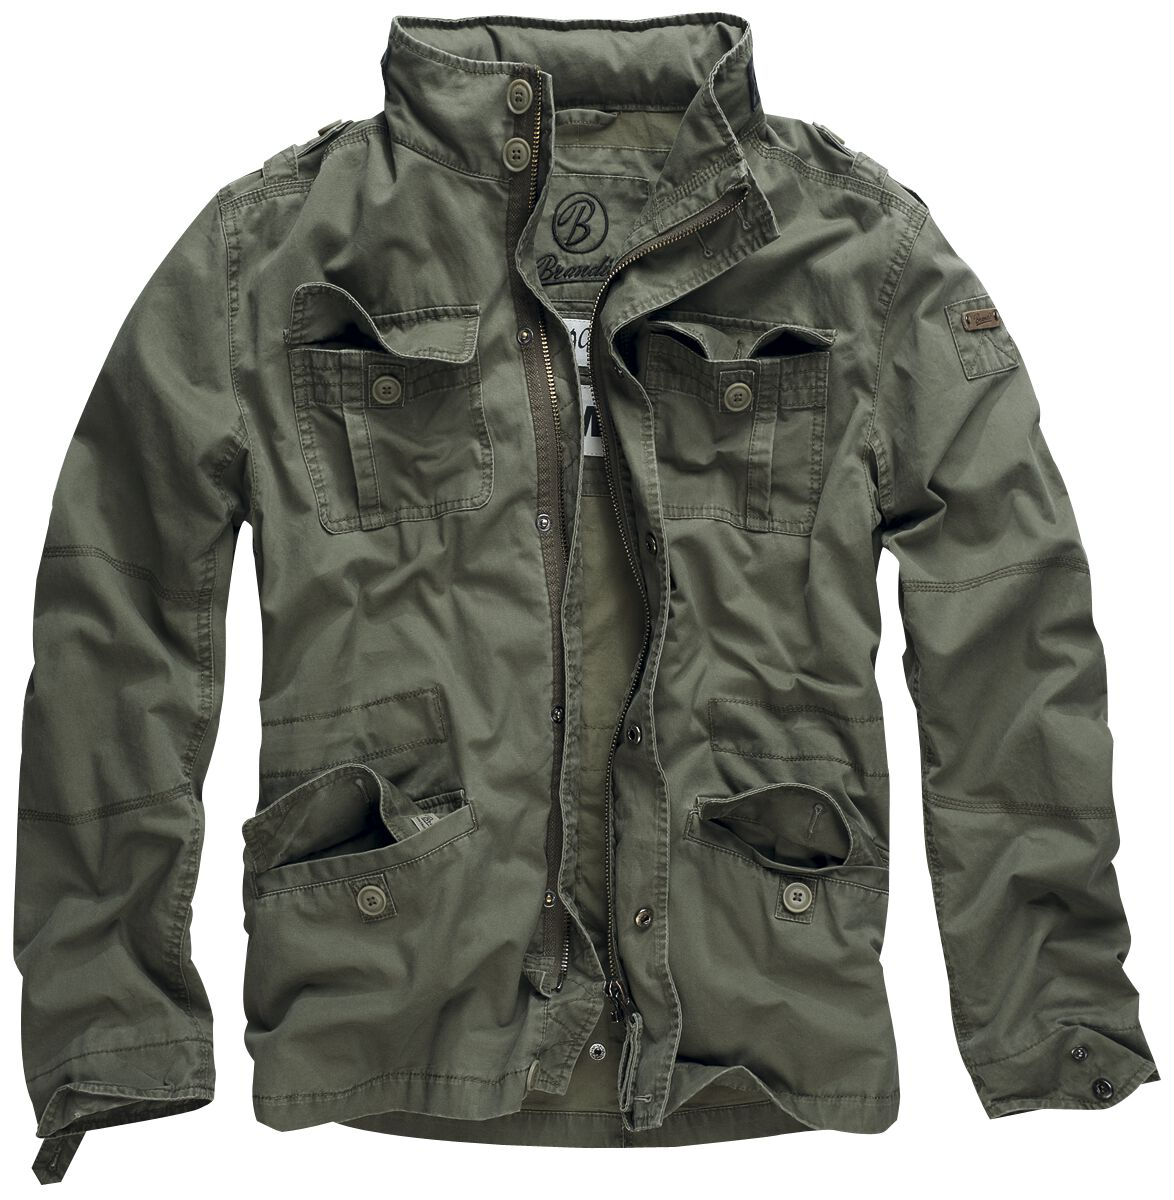 7810be5e0 Brandit. Britannia Jacket. Between-seasons Jacket. 6 Reviews